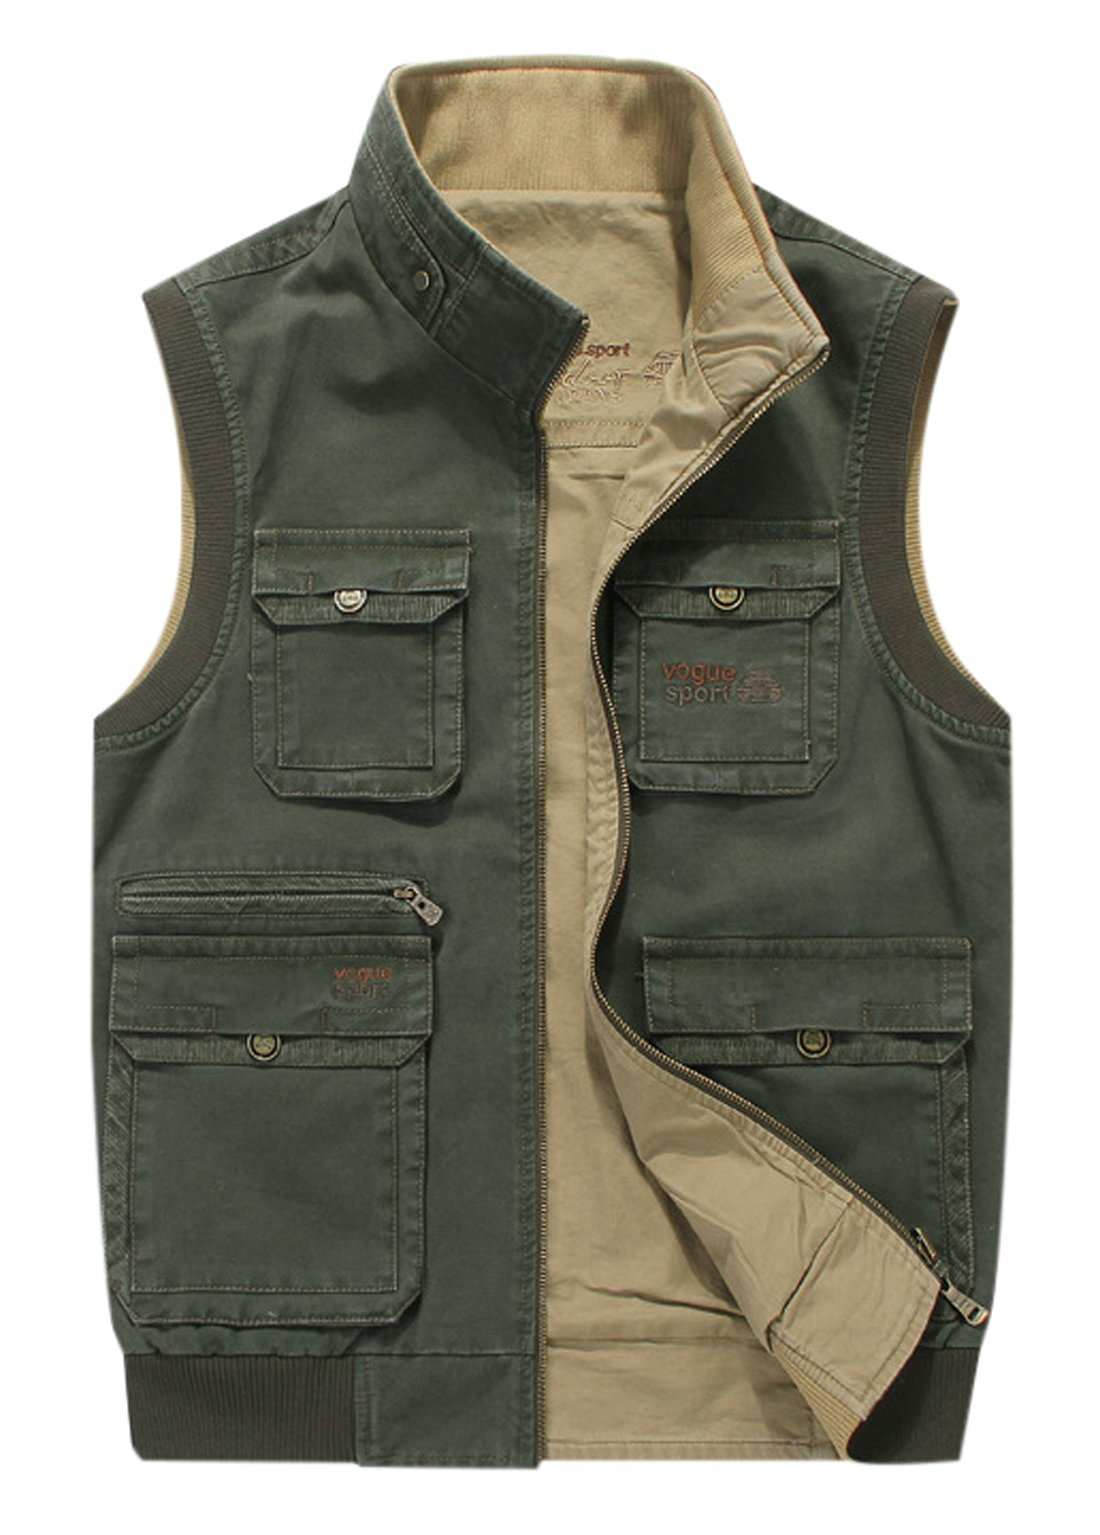 Gihuo Men's Reversible Cotton Leisure Outdoor Pockets Fish Photo Journalist Vest (XX-L, Army Green)